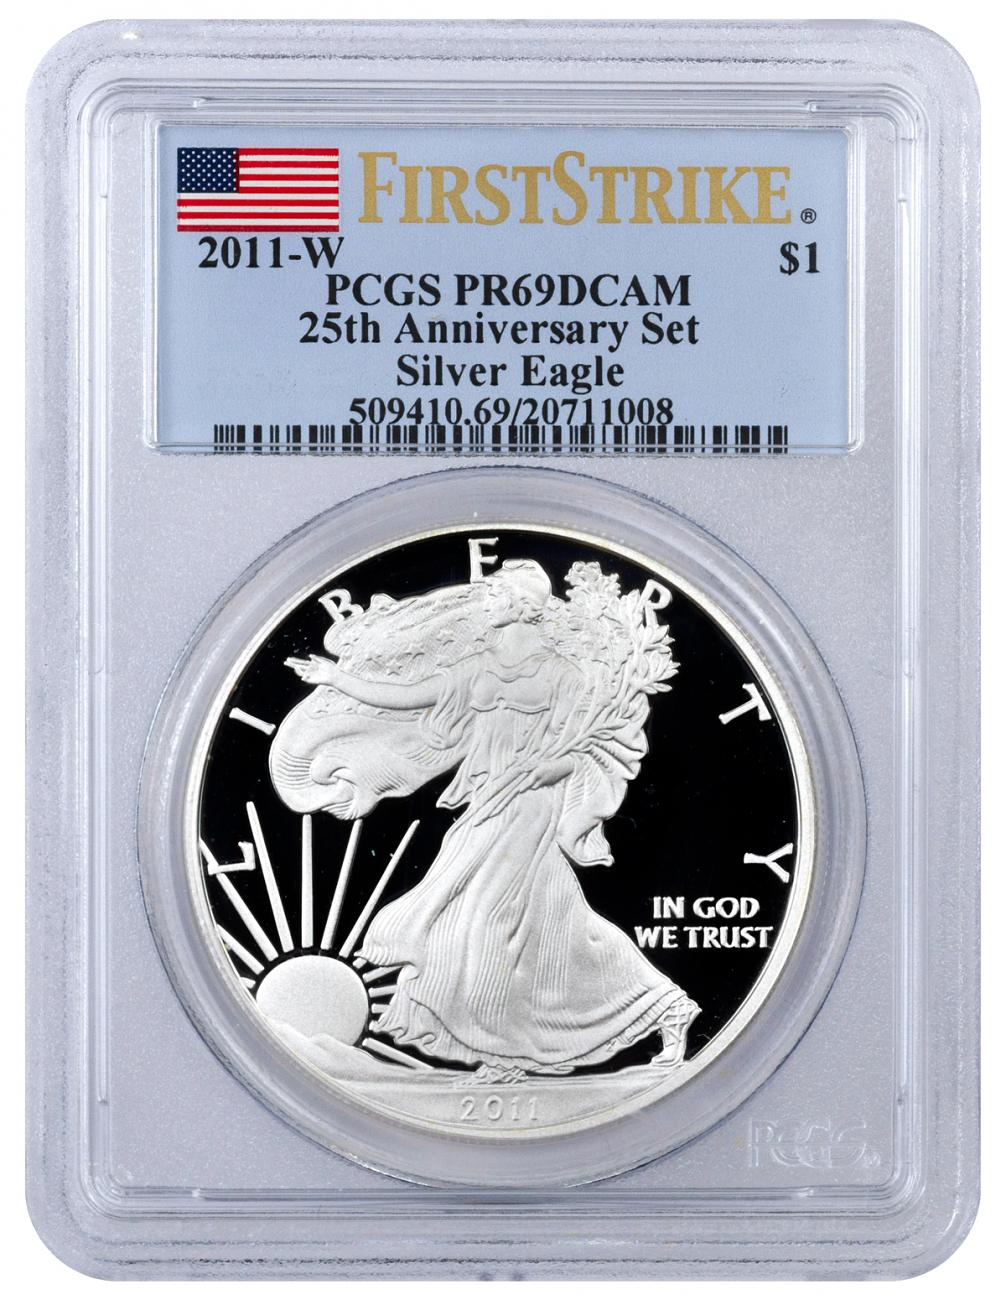 2011-W Proof American Silver Eagle - From 25th Anniversary Set - PCGS PR69 DCAM First Strike